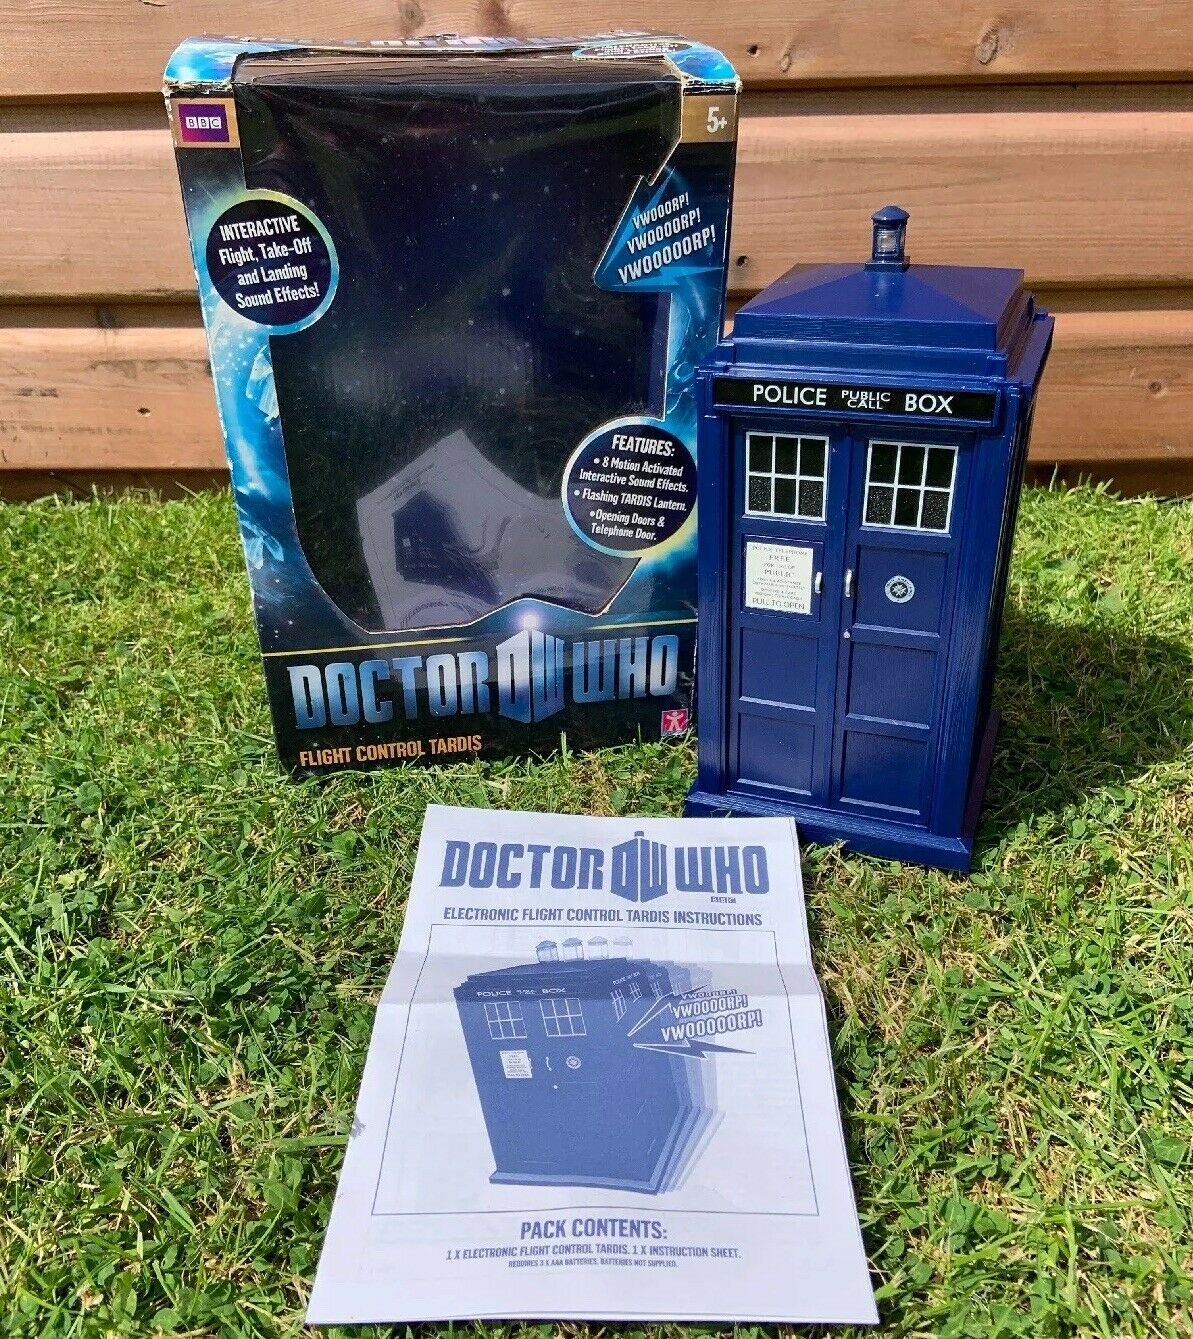 11TH ELEVENTH DOCTOR WHO FLIGHT CONTROL TARDIS LIGHTS SOUNDS TOY 8  - BOXED